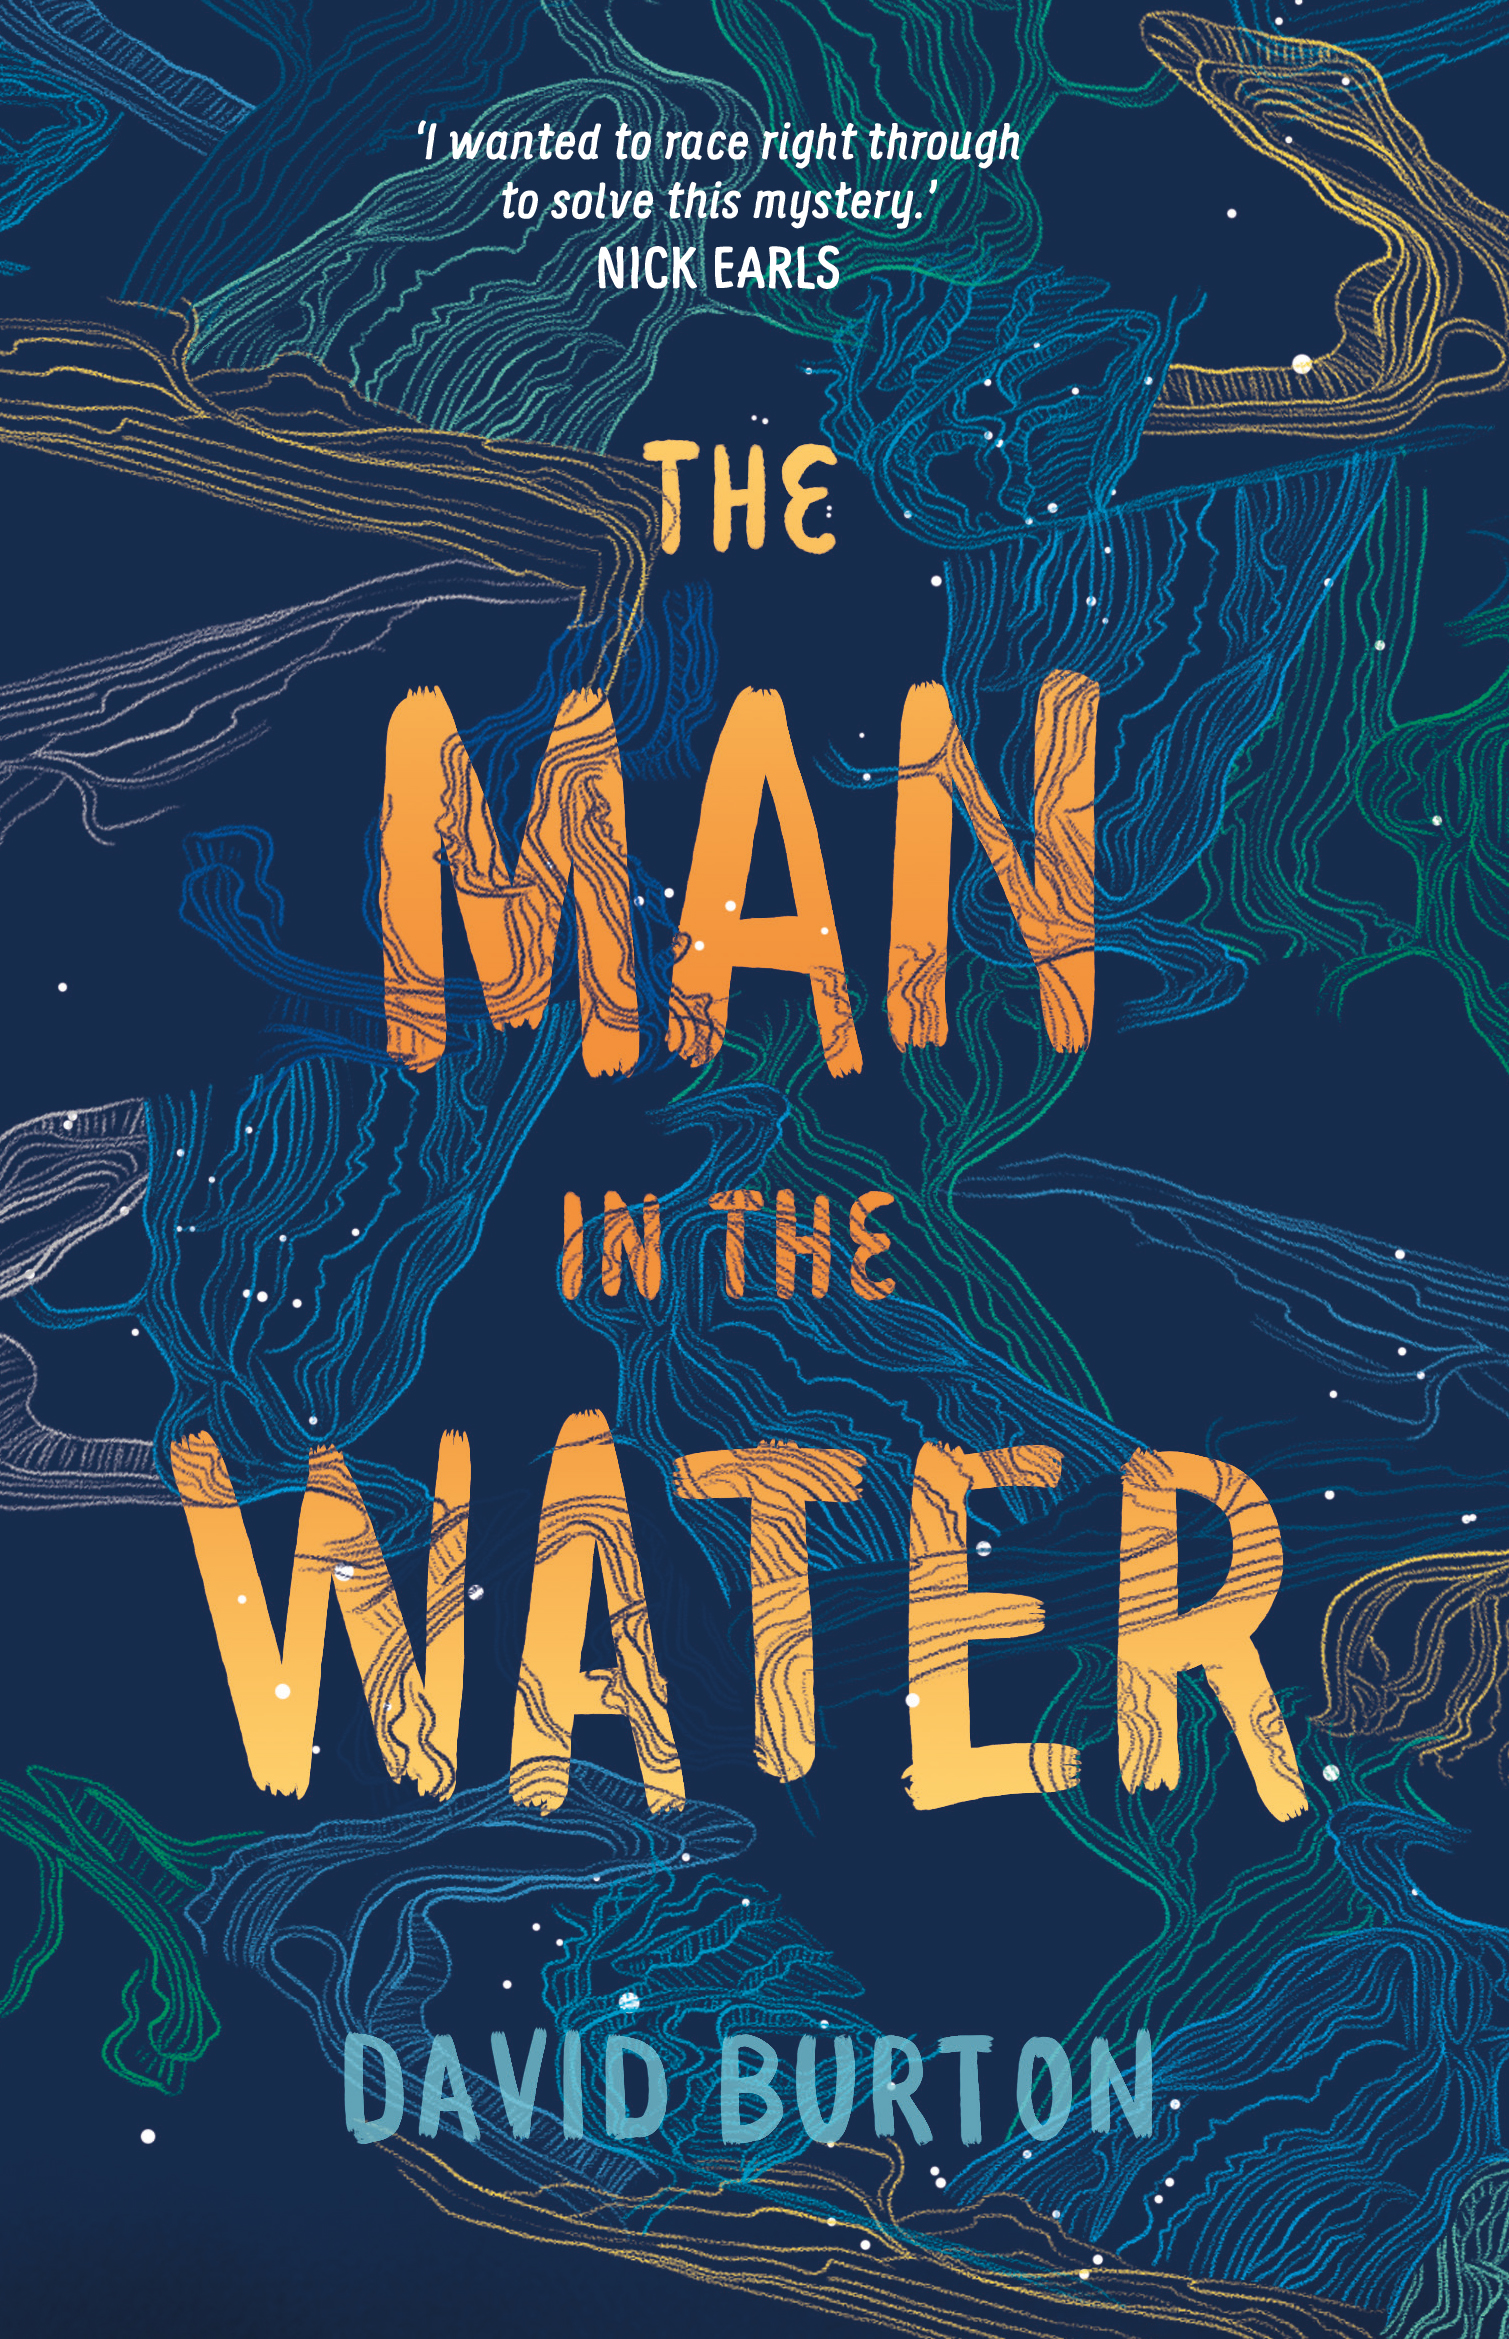 "Right now - I'm proud to announce that my new book The Man In The Water, published by UQP, is available for pre-order!When 16-year-old Shaun discovers a dead body in the lake of a quiet mining town in outback Queensland, he immediately reports it to the police. But when he returns to the site with the constable, the body is gone. Shaun's father drowned a few years ago, and now his mum and the authorities questions whether he saw a body at all. Determined to show the town the truth, Shaun and his best friend, Will, open their own investigation. But what they discover is far more sinister than a mining mishap or a murder, and reveals a darkness below the surface of their small mining town.""'The reader in me wanted to race right through this to solve the mystery. The writer in me thought I should put the brakes on and appreciate the fine writing. The reader won. I had to know. Had to. That's how good the writing is."" Nick Earls"